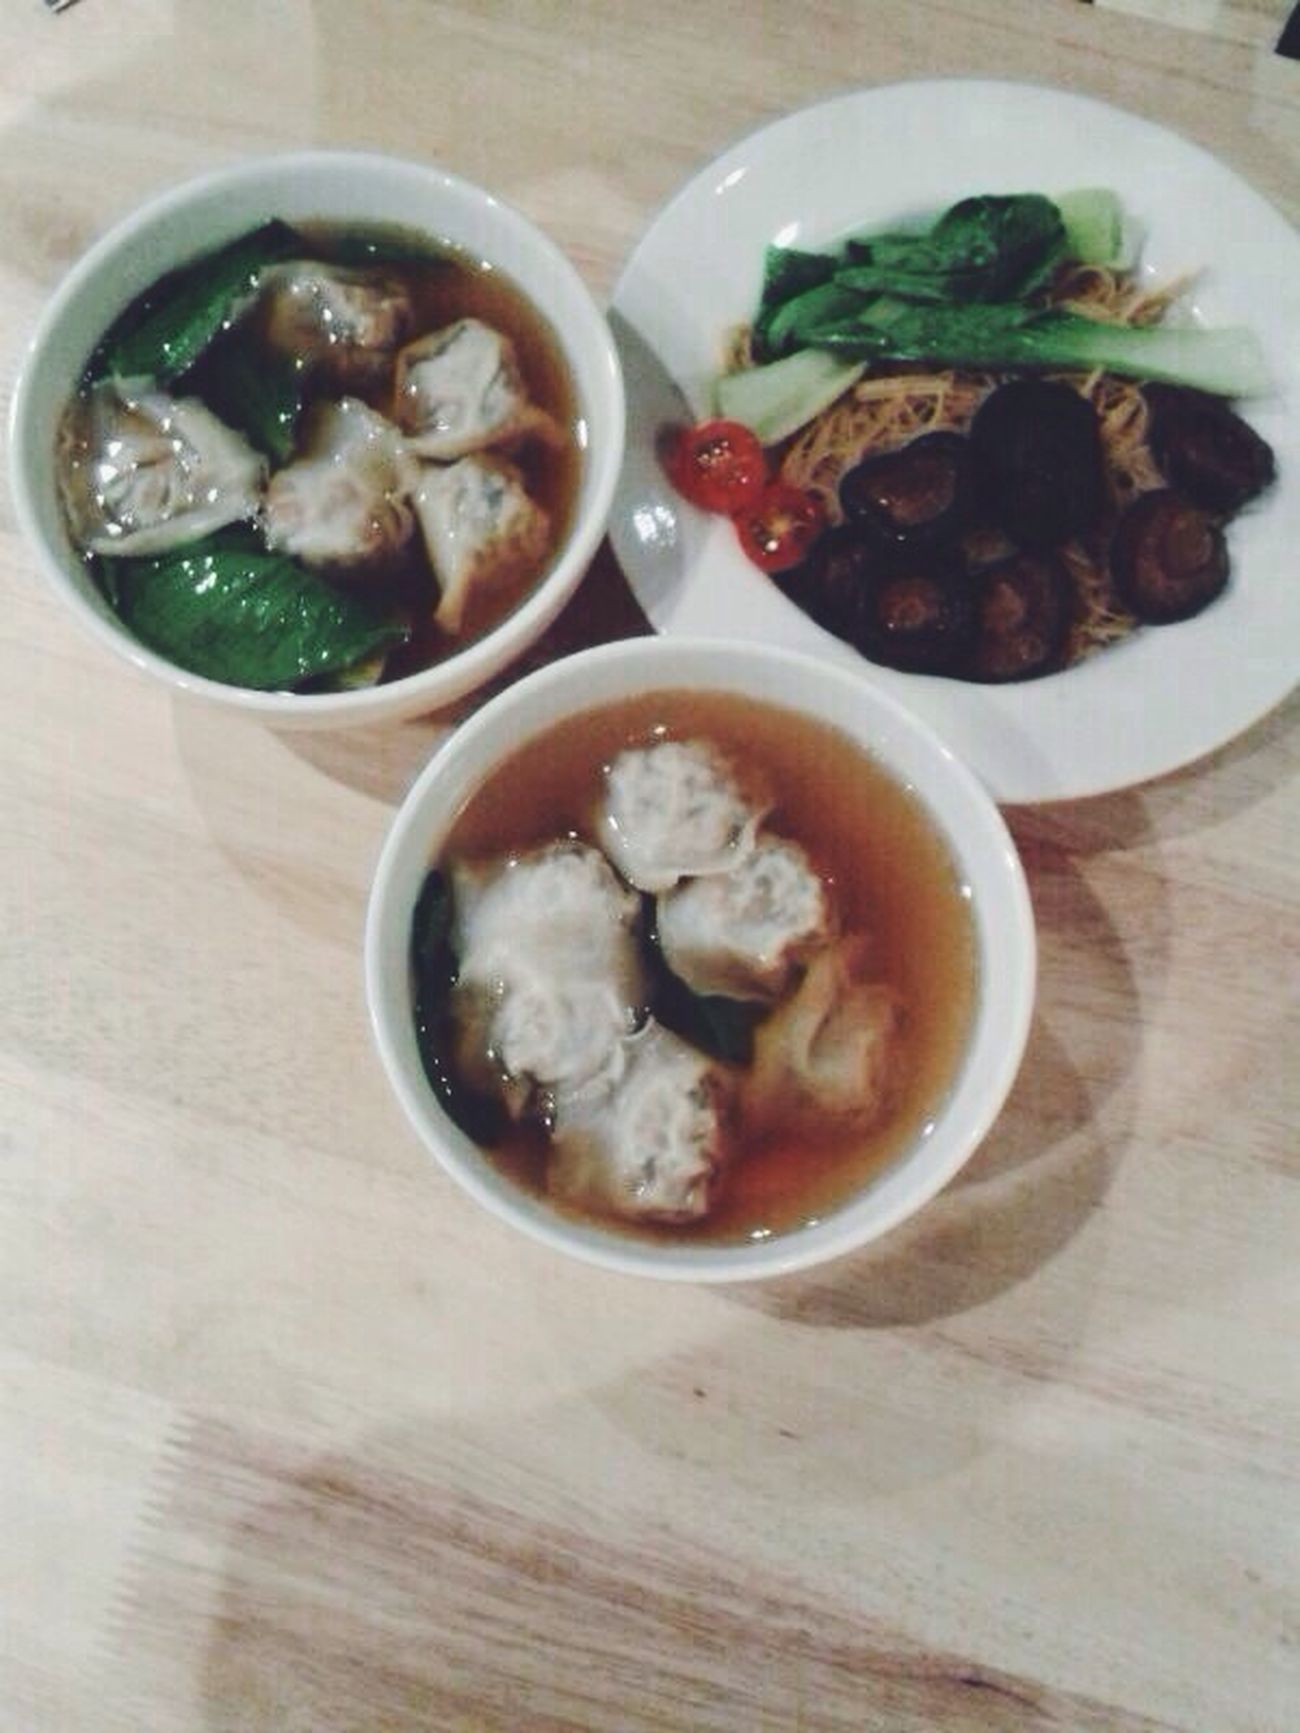 Fearfoodfriday: Real Food mushroom noodle and dumpling soup